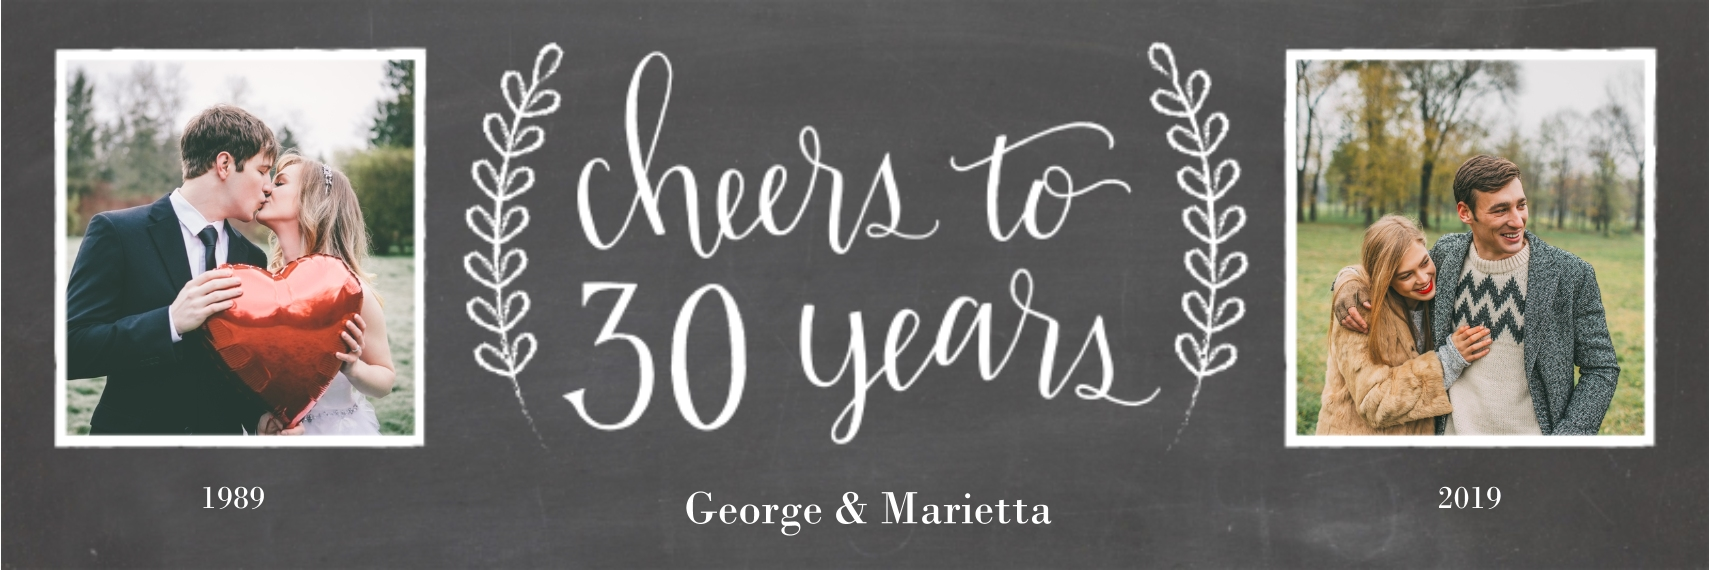 Anniversary Photo Banner 1x3, Home Décor -Chalkboard Anniversary